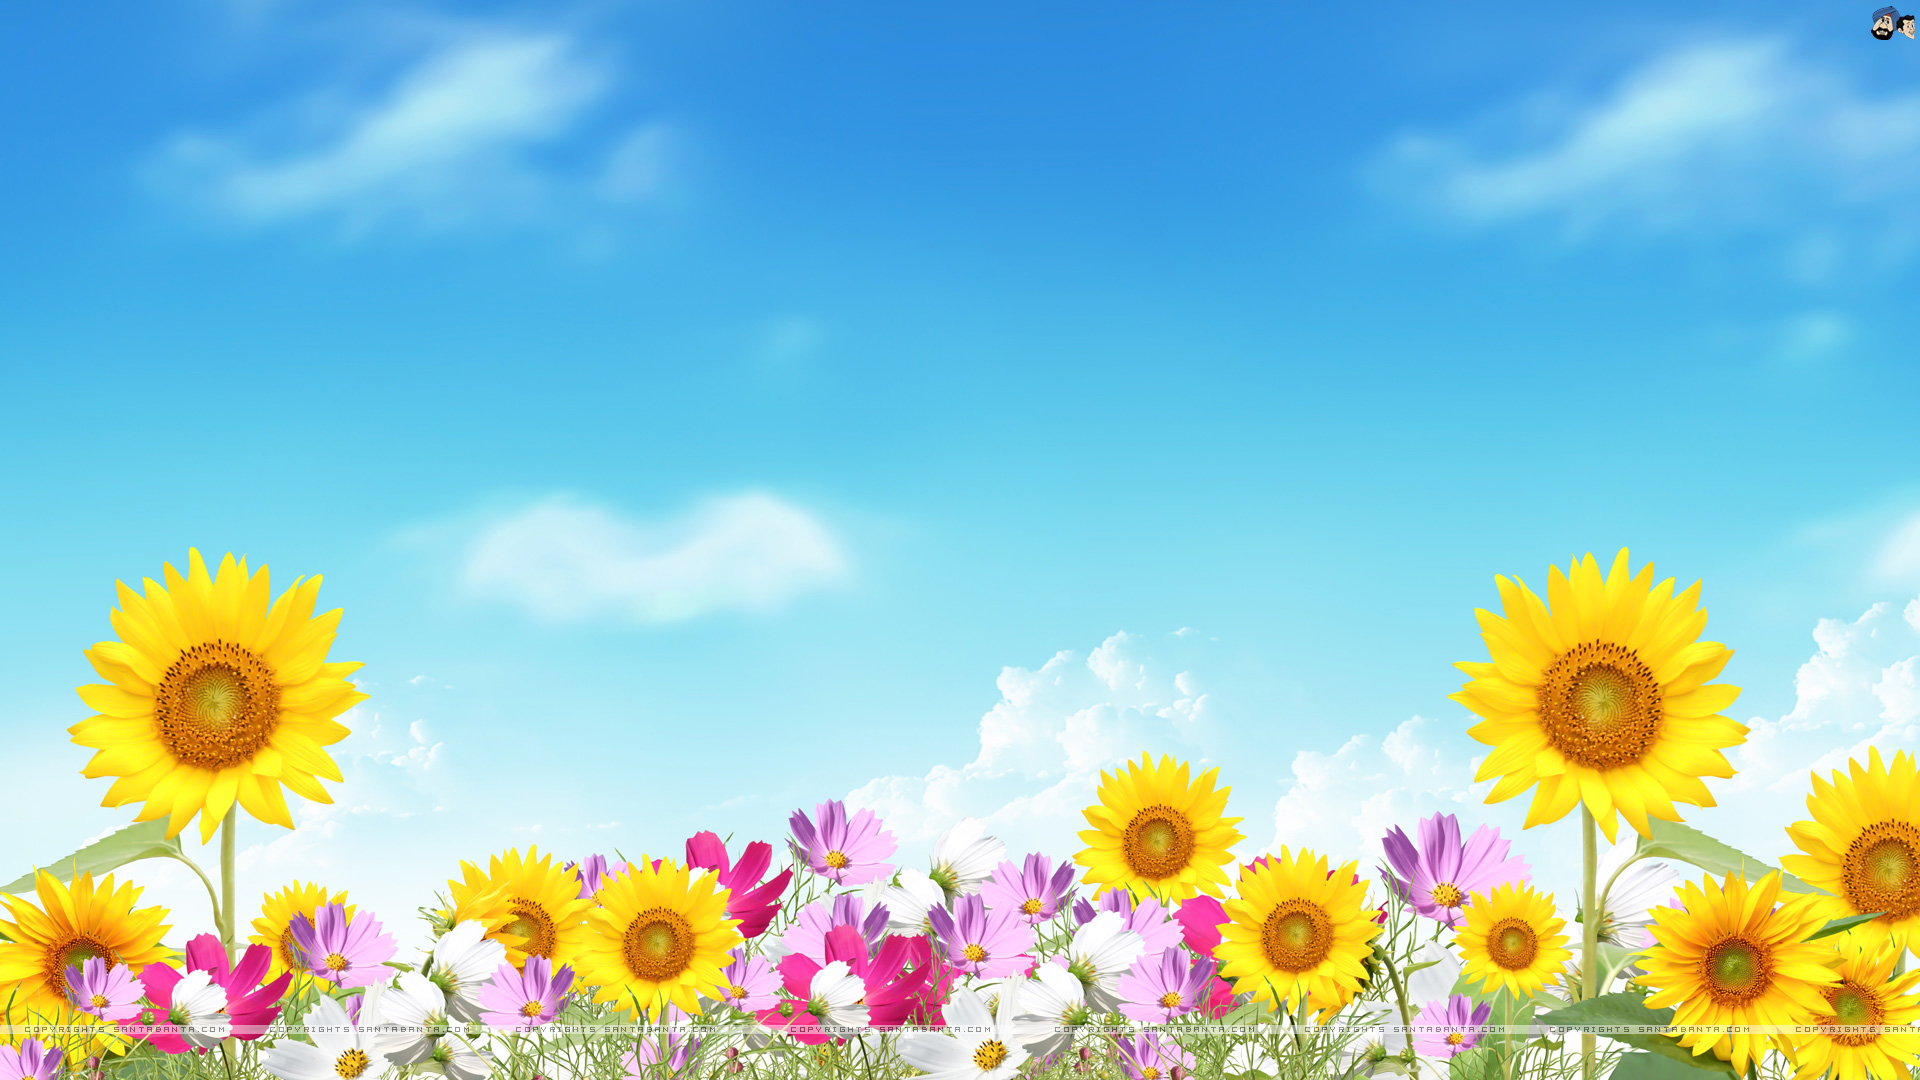 Summer Beautiful Nature Wallpapers With Resolutions 19201080 Pixel 1920x1080